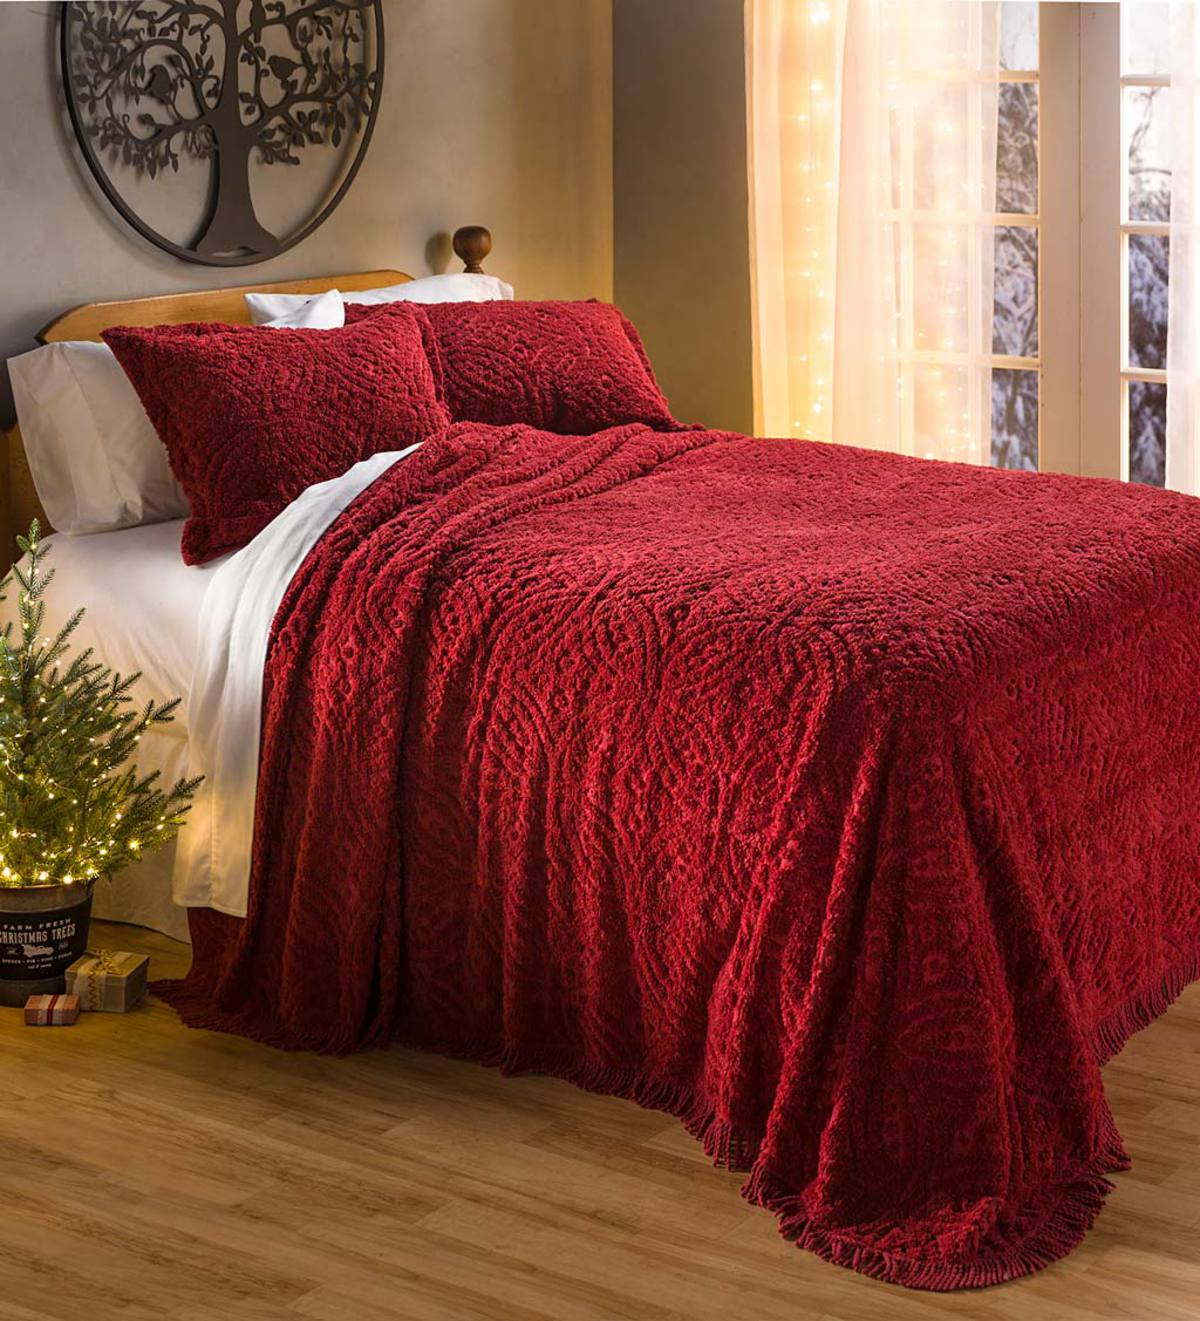 Queen Wedding Ring Tufted Chenille Bedspread - Antique Red